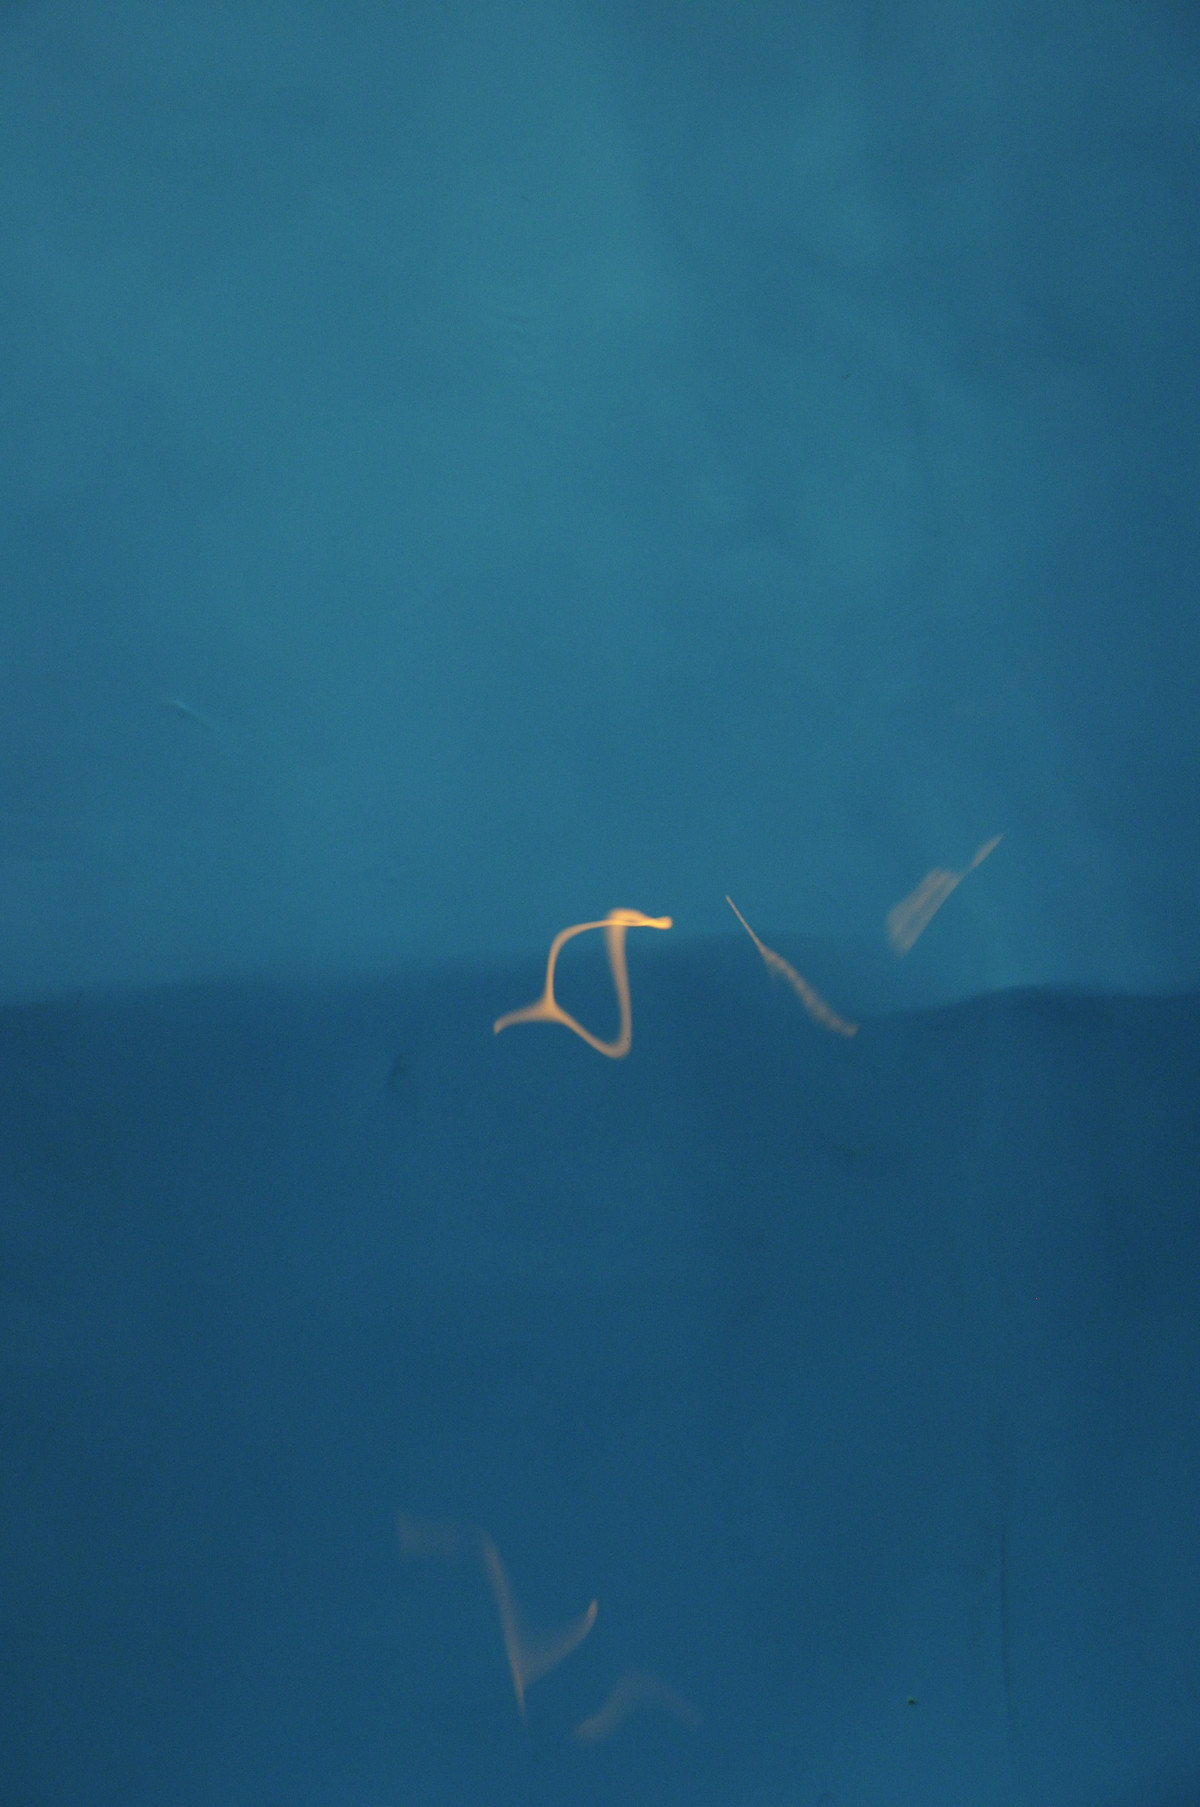 Untitled by Ravi Shail, Image Photography, Digital Print on Archival Paper, Blue color